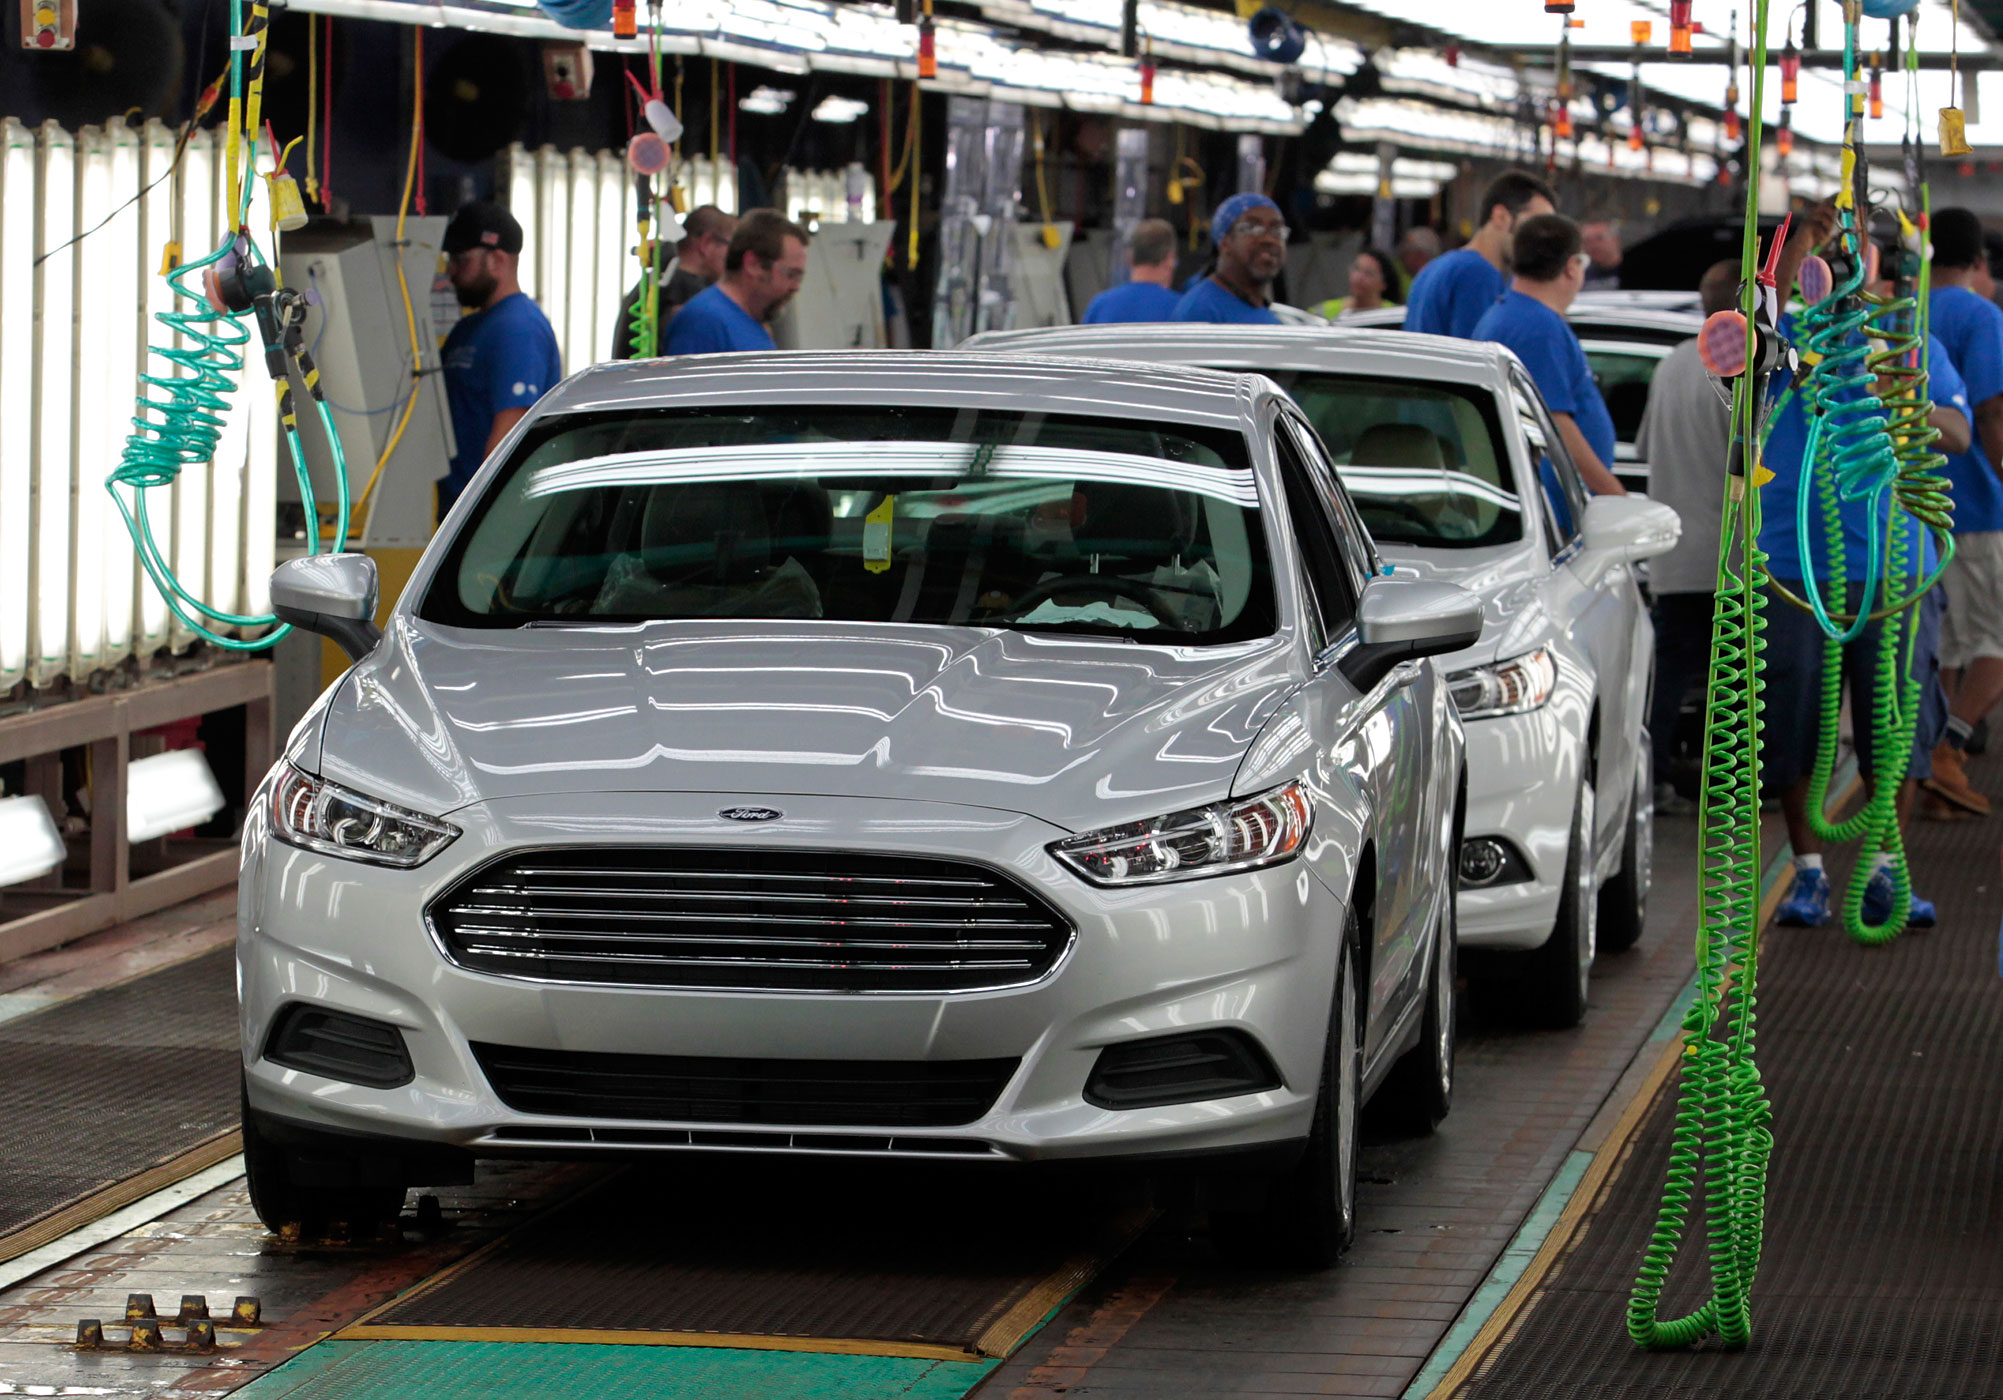 2014 Ford Fusion vehicles move down the production he line at the Flat Rock Assembly Plant in Flat Rock, Michigan, U.S., on Thursday, Aug. 29, 2013.